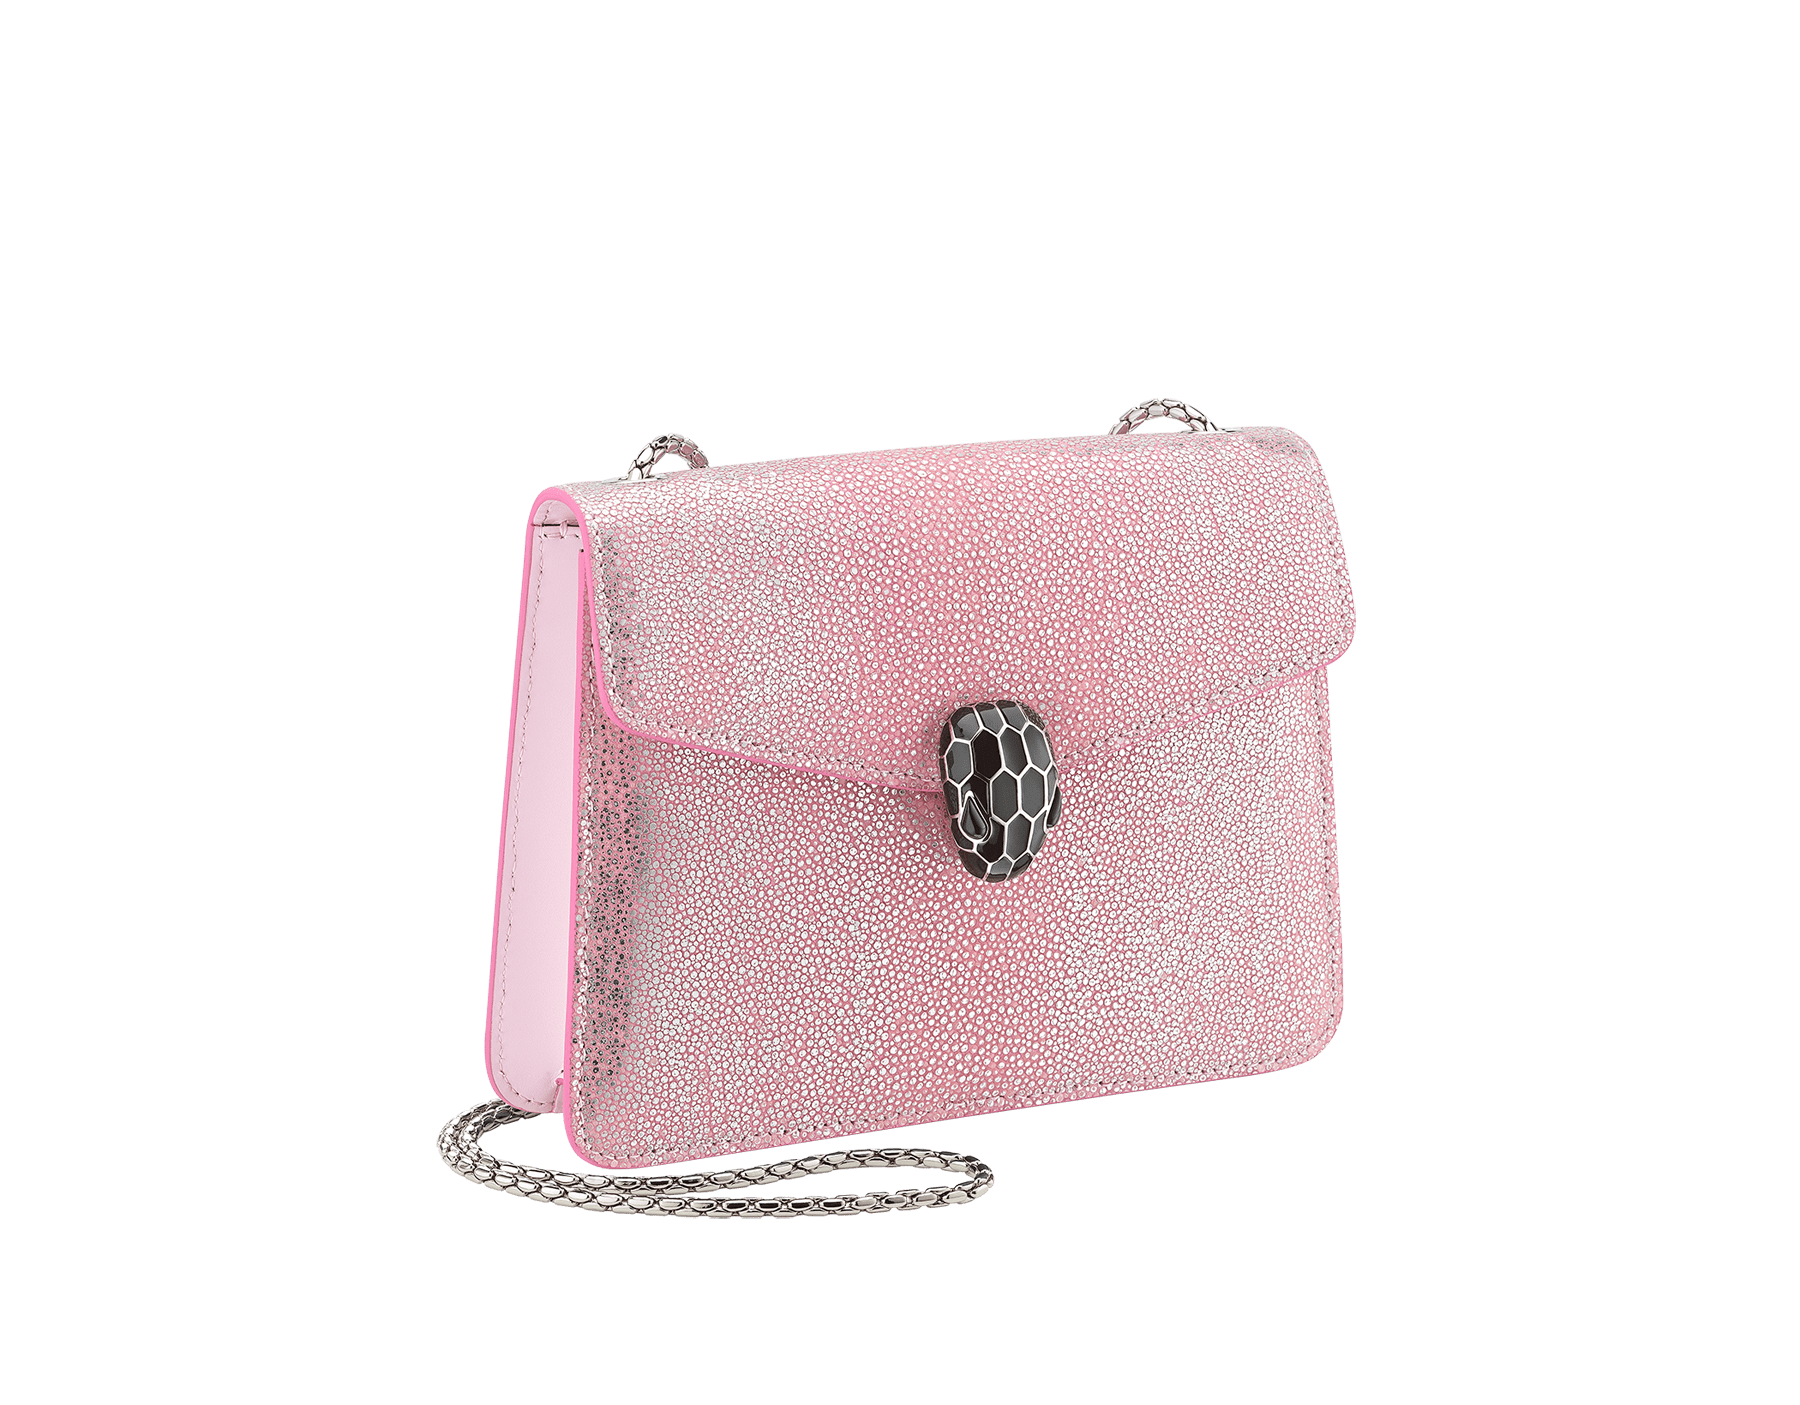 """Serpenti Forever"" crossbody bag in rosa di francia crystal galuchat skin. Iconic snake head closure in palladium plated brass enriched with black enamel and black onyx eyes. 289408 image 2"